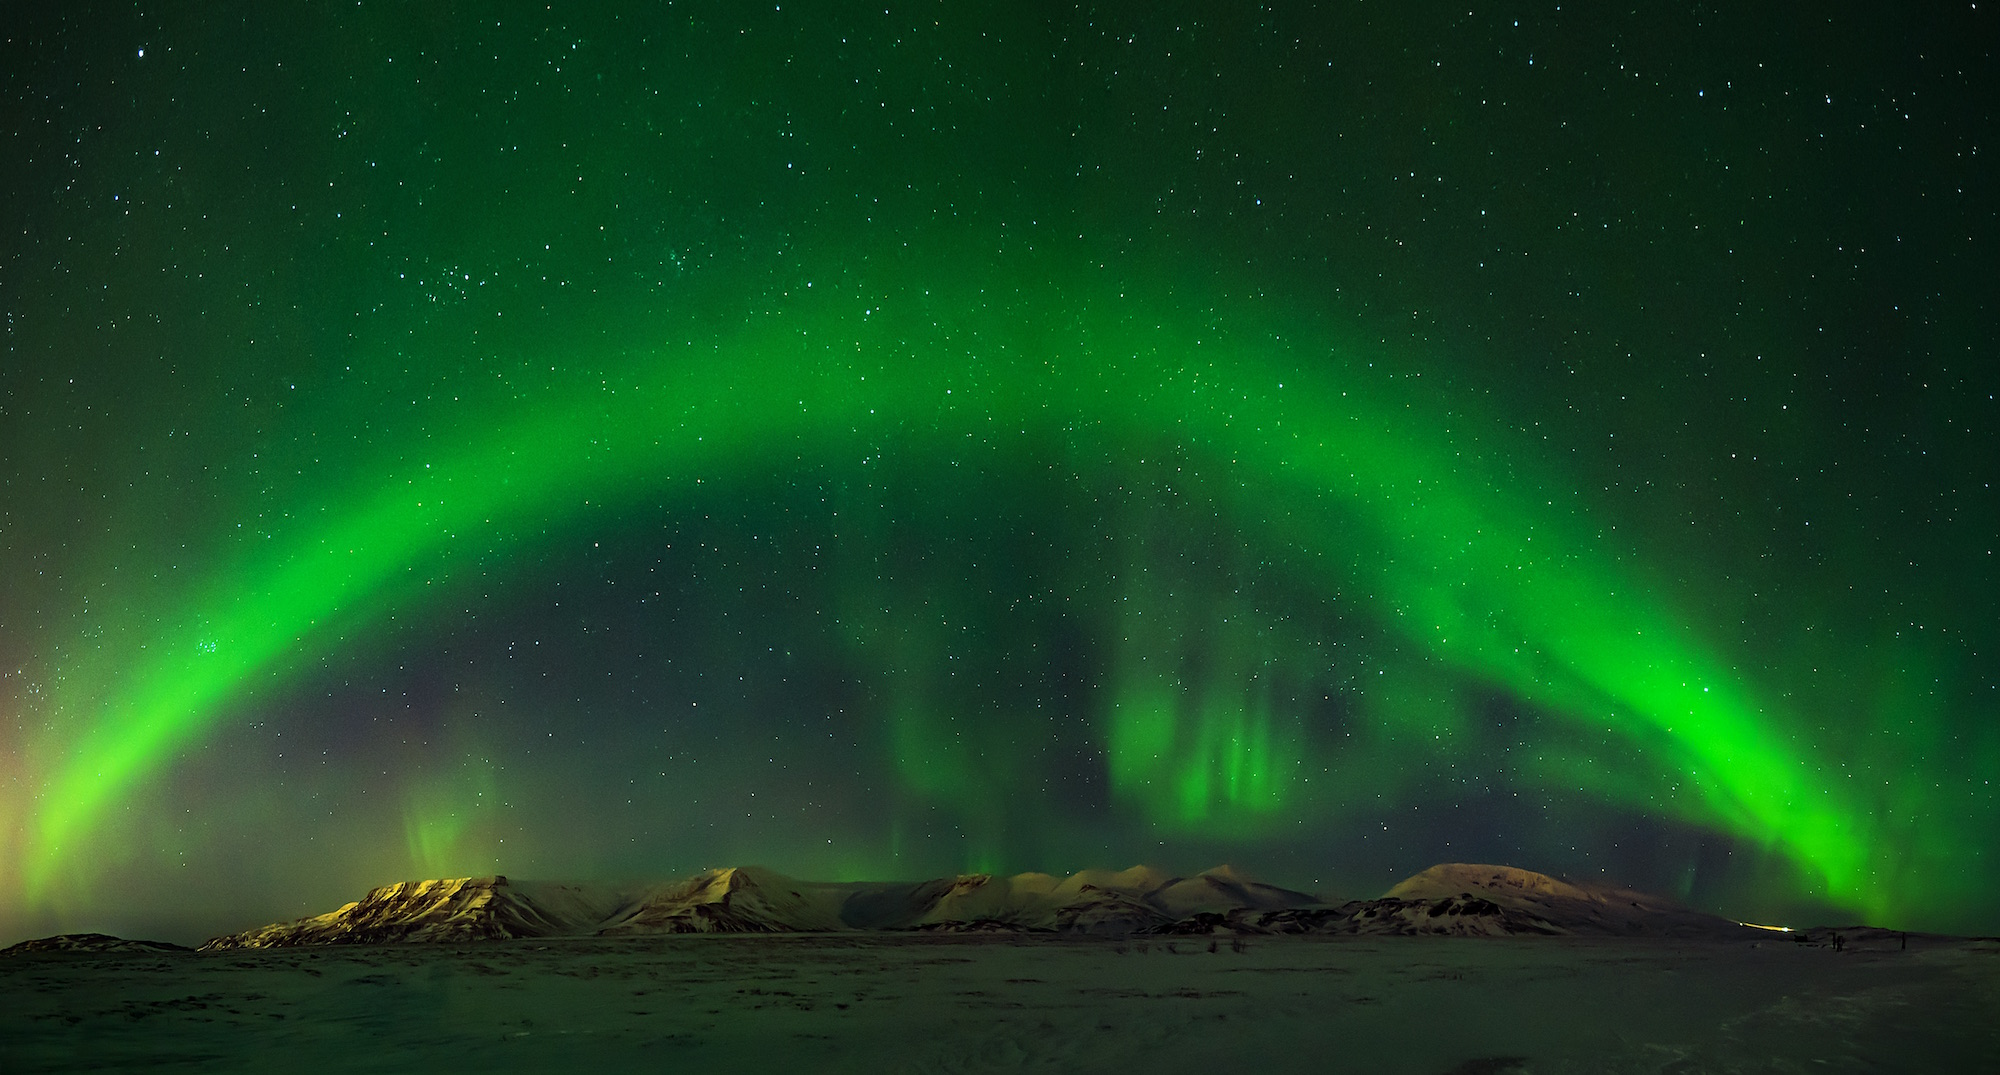 Capture the spectacular Northern Lights.